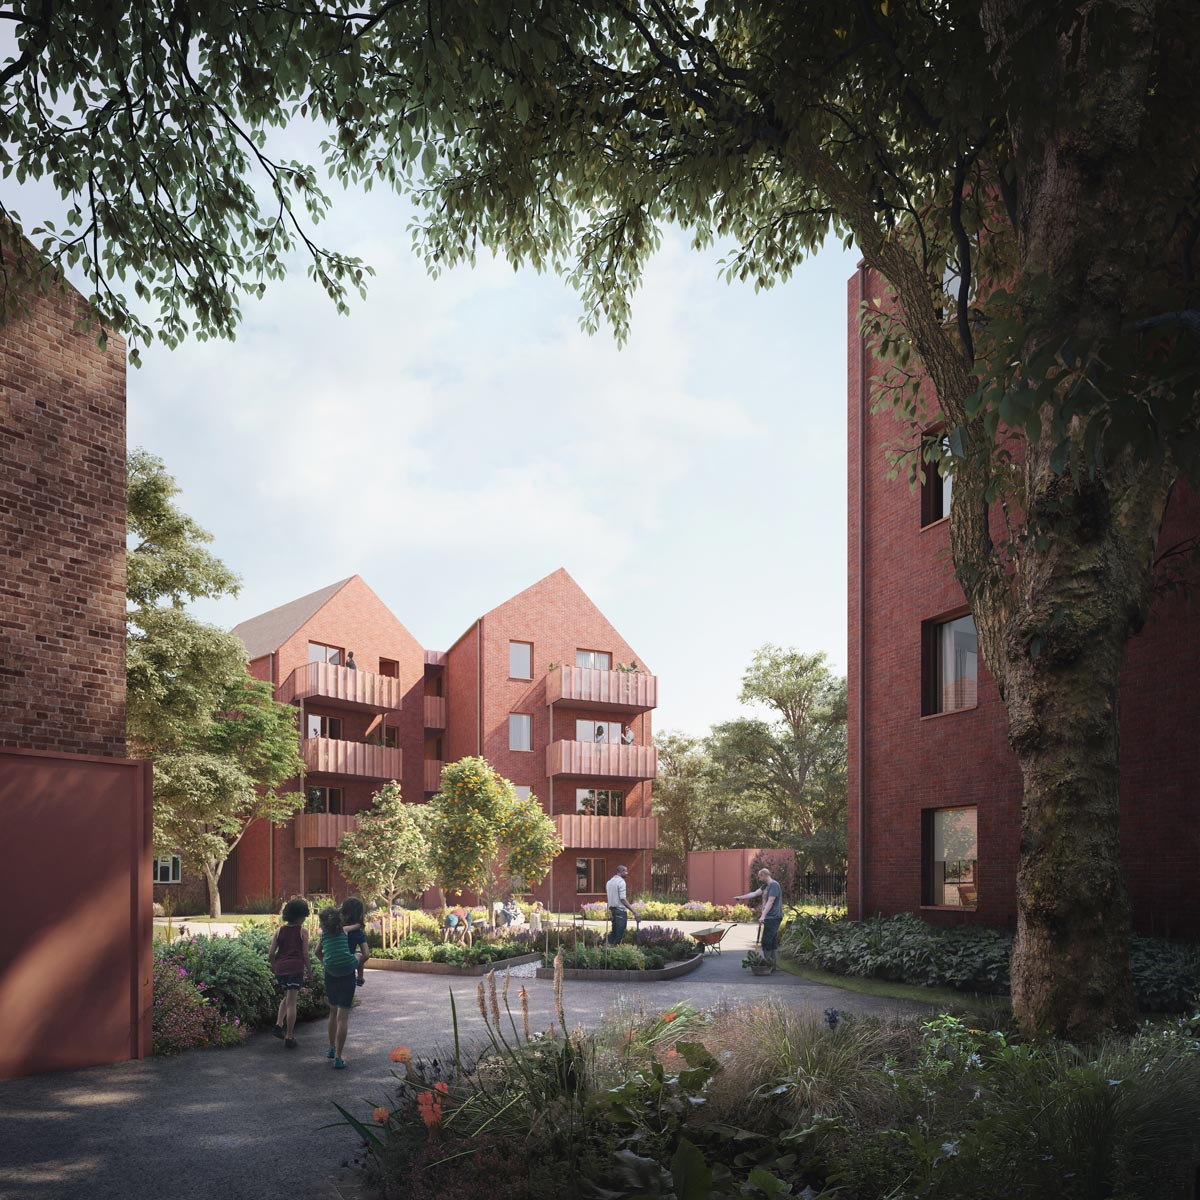 Planning submitted for new homes in Waltham Forest, part 1